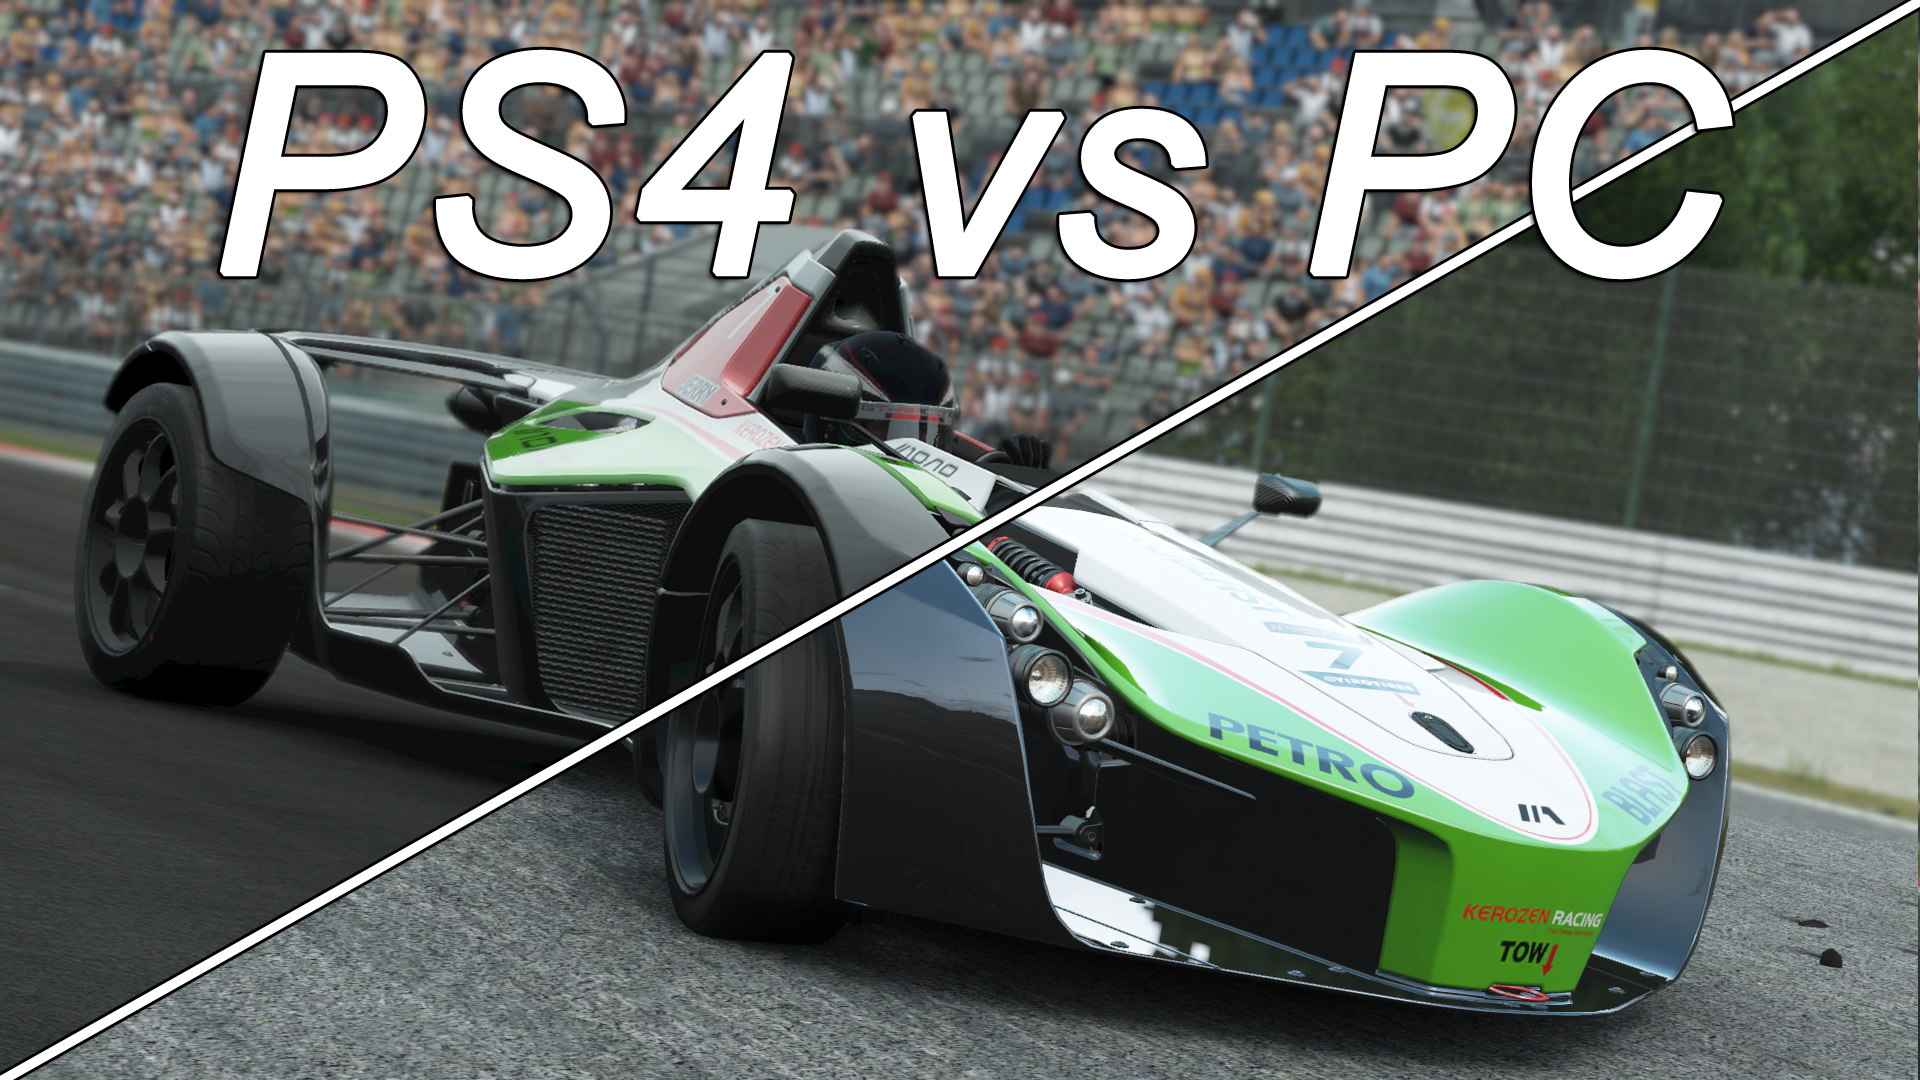 project cars screenshot comparison ps4 vs pc version on. Black Bedroom Furniture Sets. Home Design Ideas